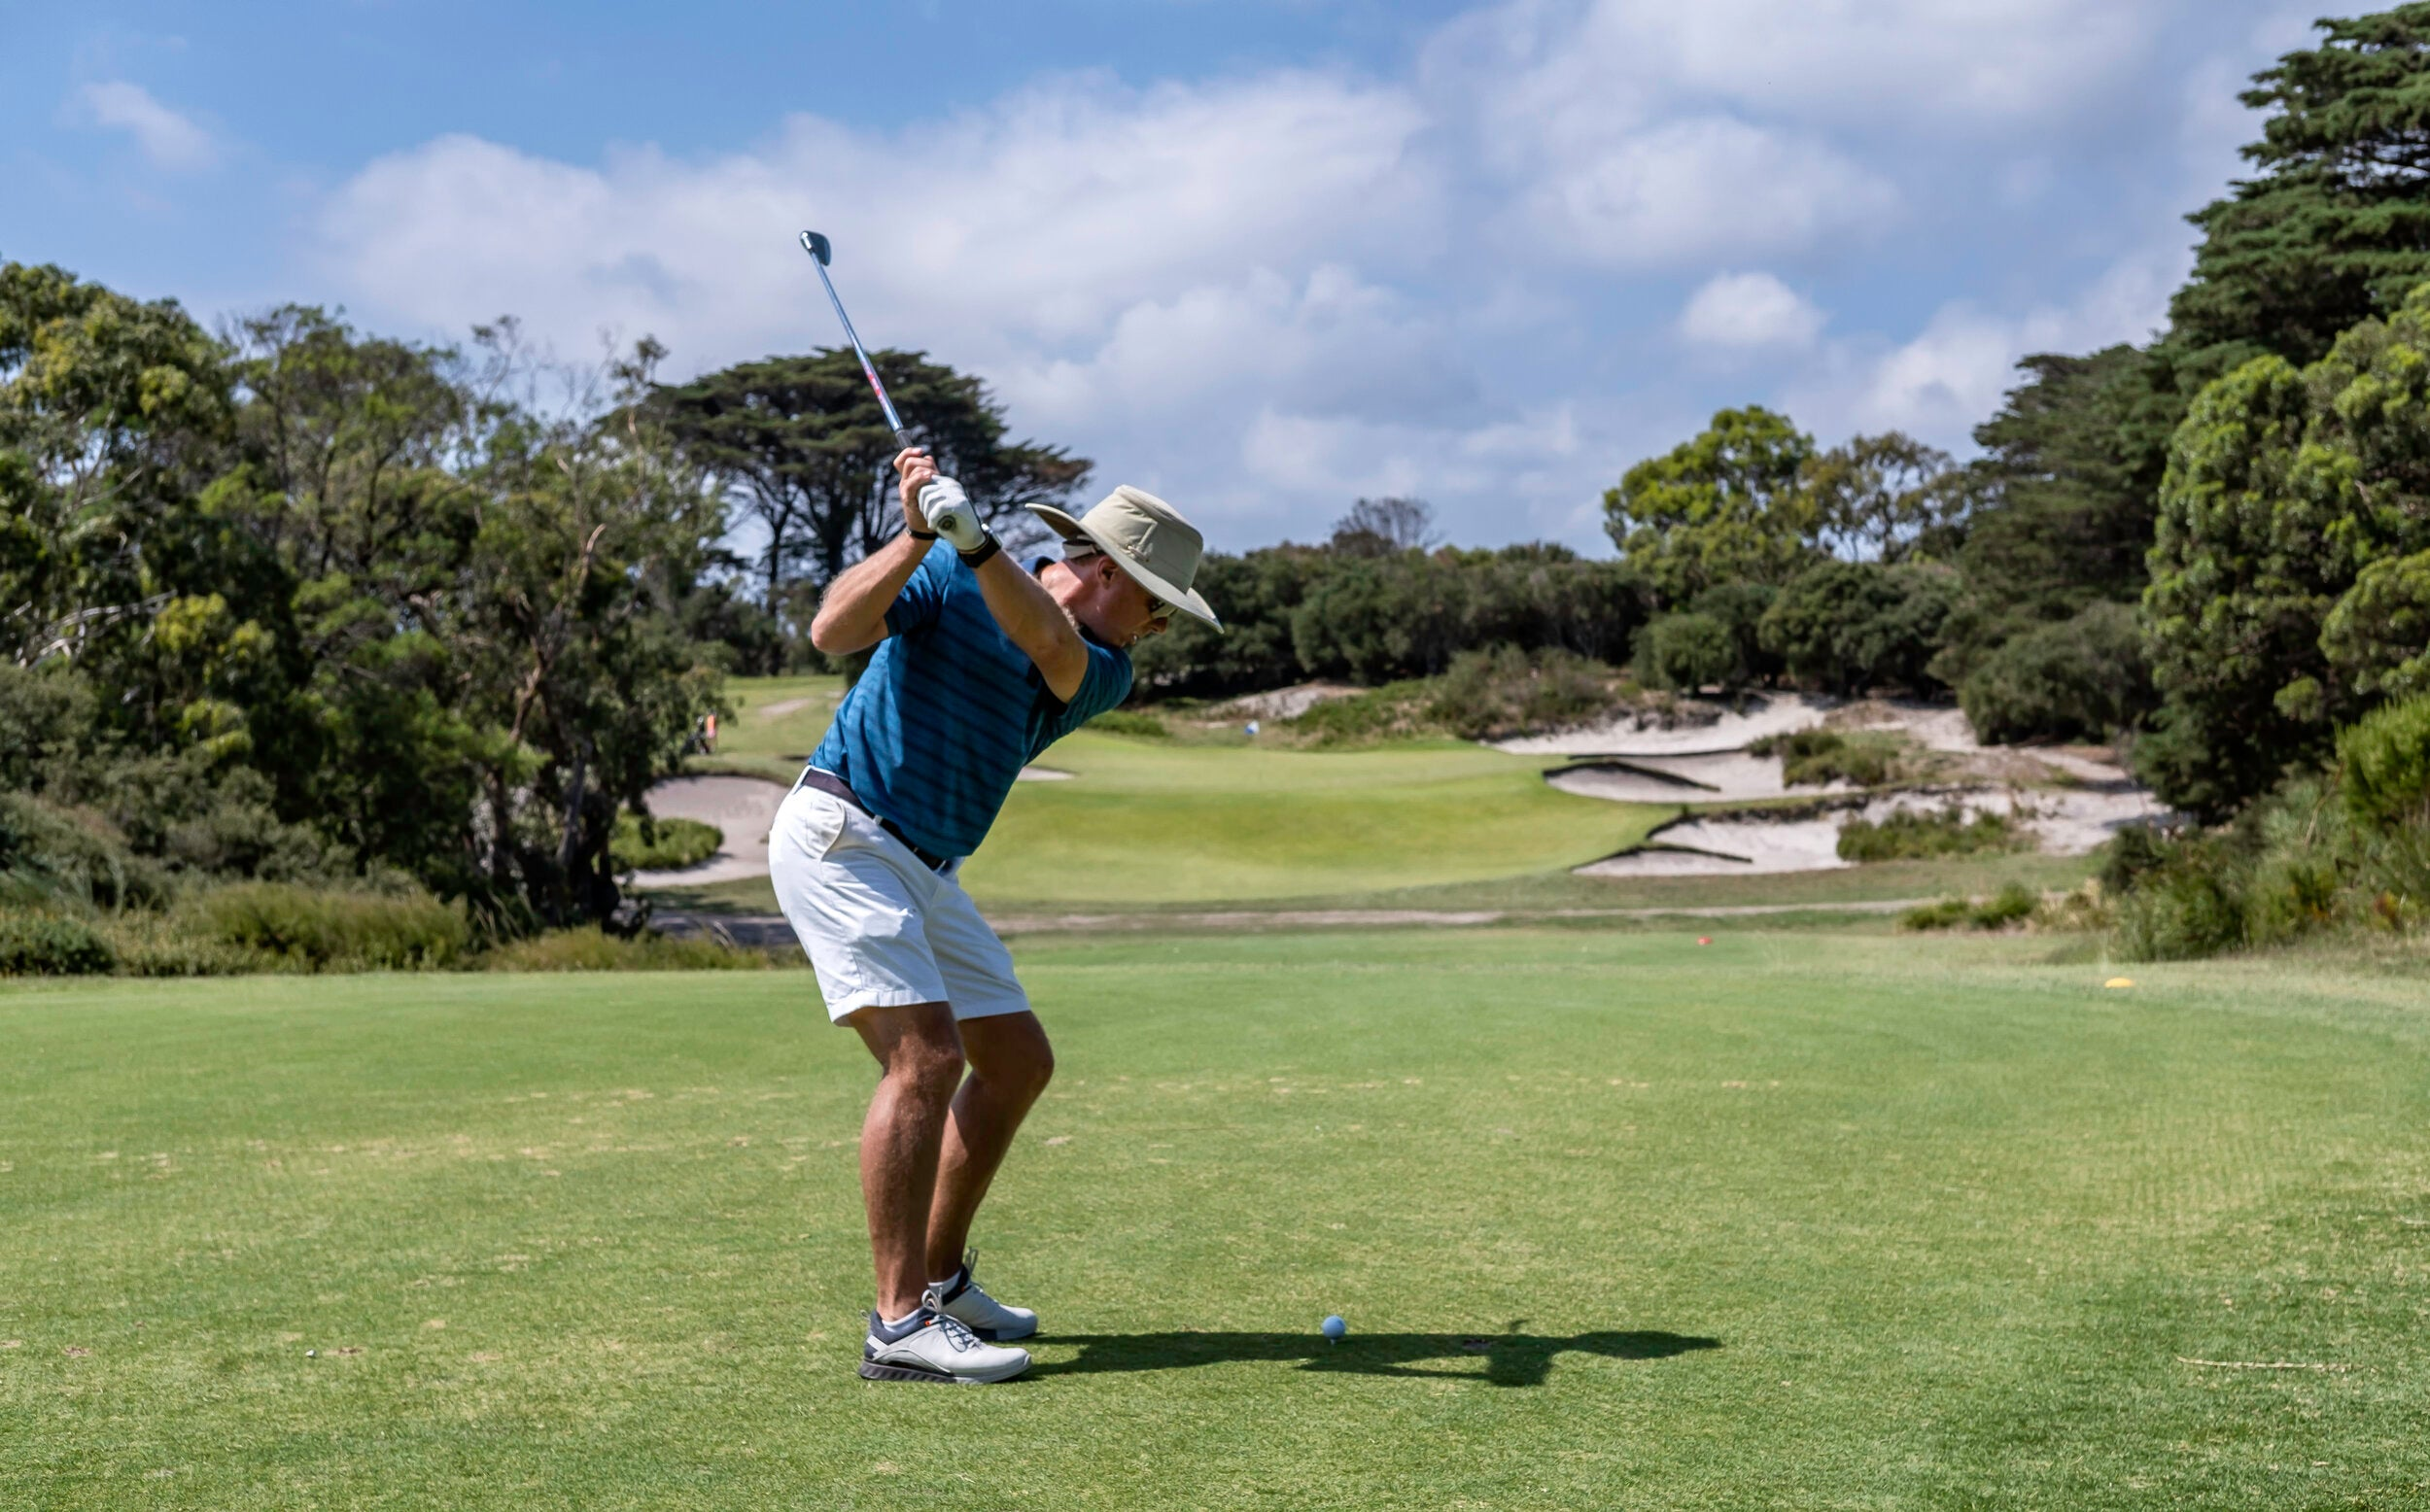 Andrew Rice at Royal Melbourne